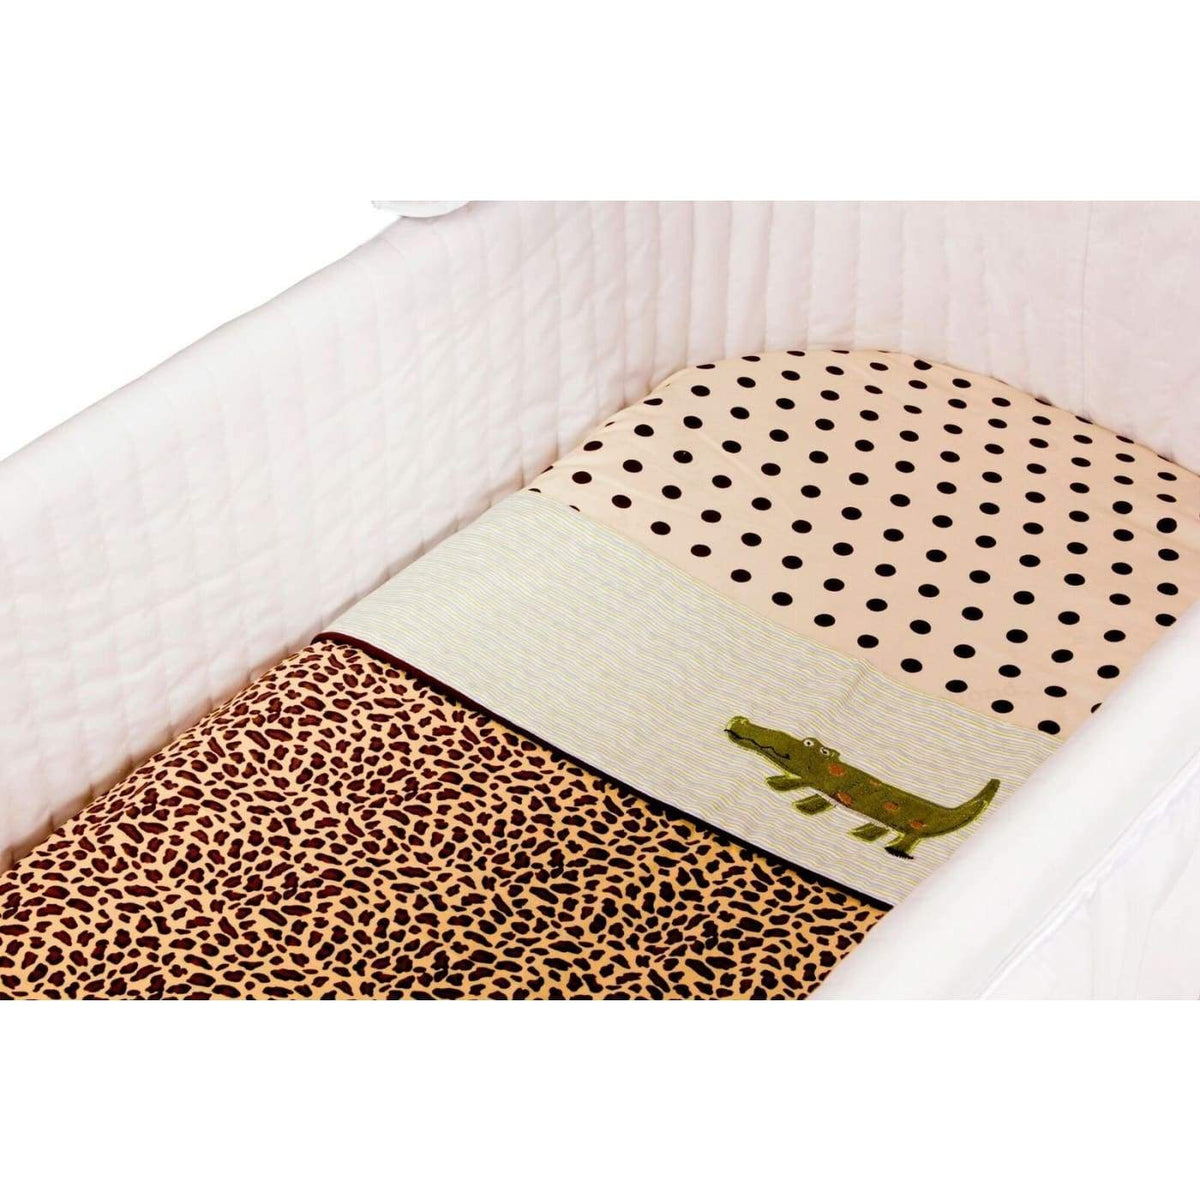 Amani Bebe Bassinet Sheet Set 3PC - Wild Things - NURSERY & BEDTIME - BASS/CRADLE/COSLEEP MANCHESTER